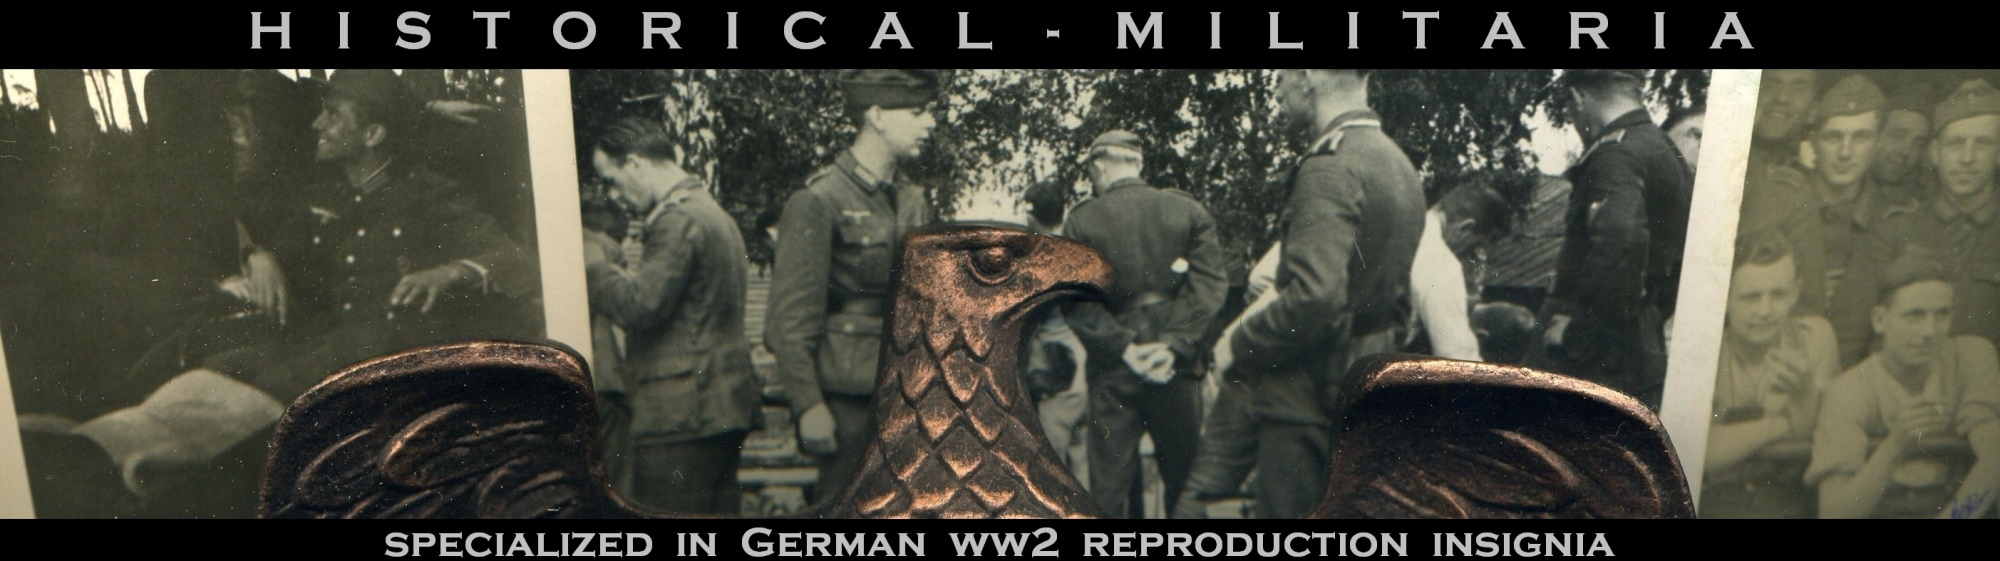 R.I. International Trading Company - Historical-Militaria